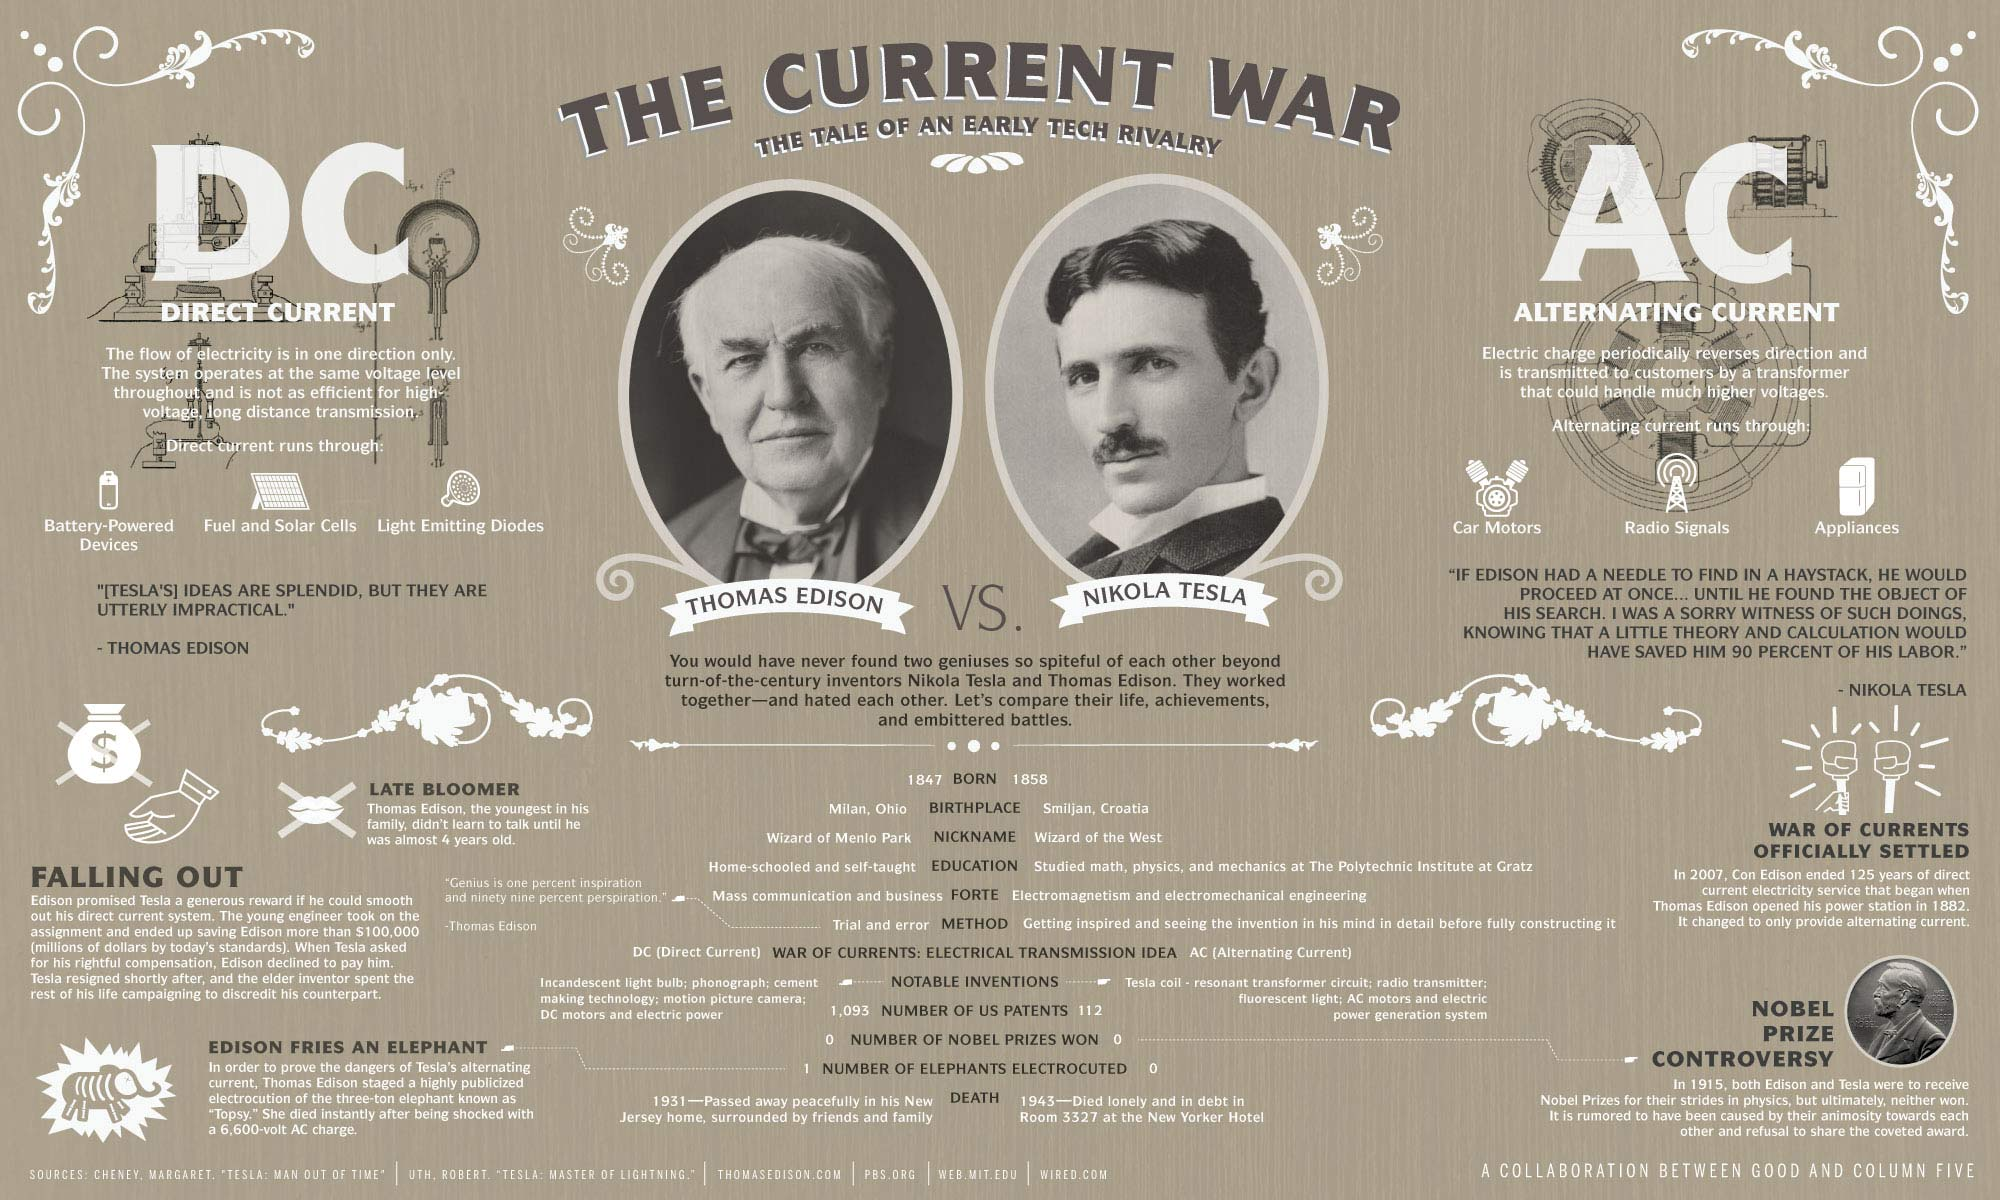 War Currents Ac Vs Dc likewise  furthermore Medios De Proteccion E Instalacion 12 moreover War 20of 20currents as well Nikola Tesla The Smartest Man Ever. on war of currents tesla edison